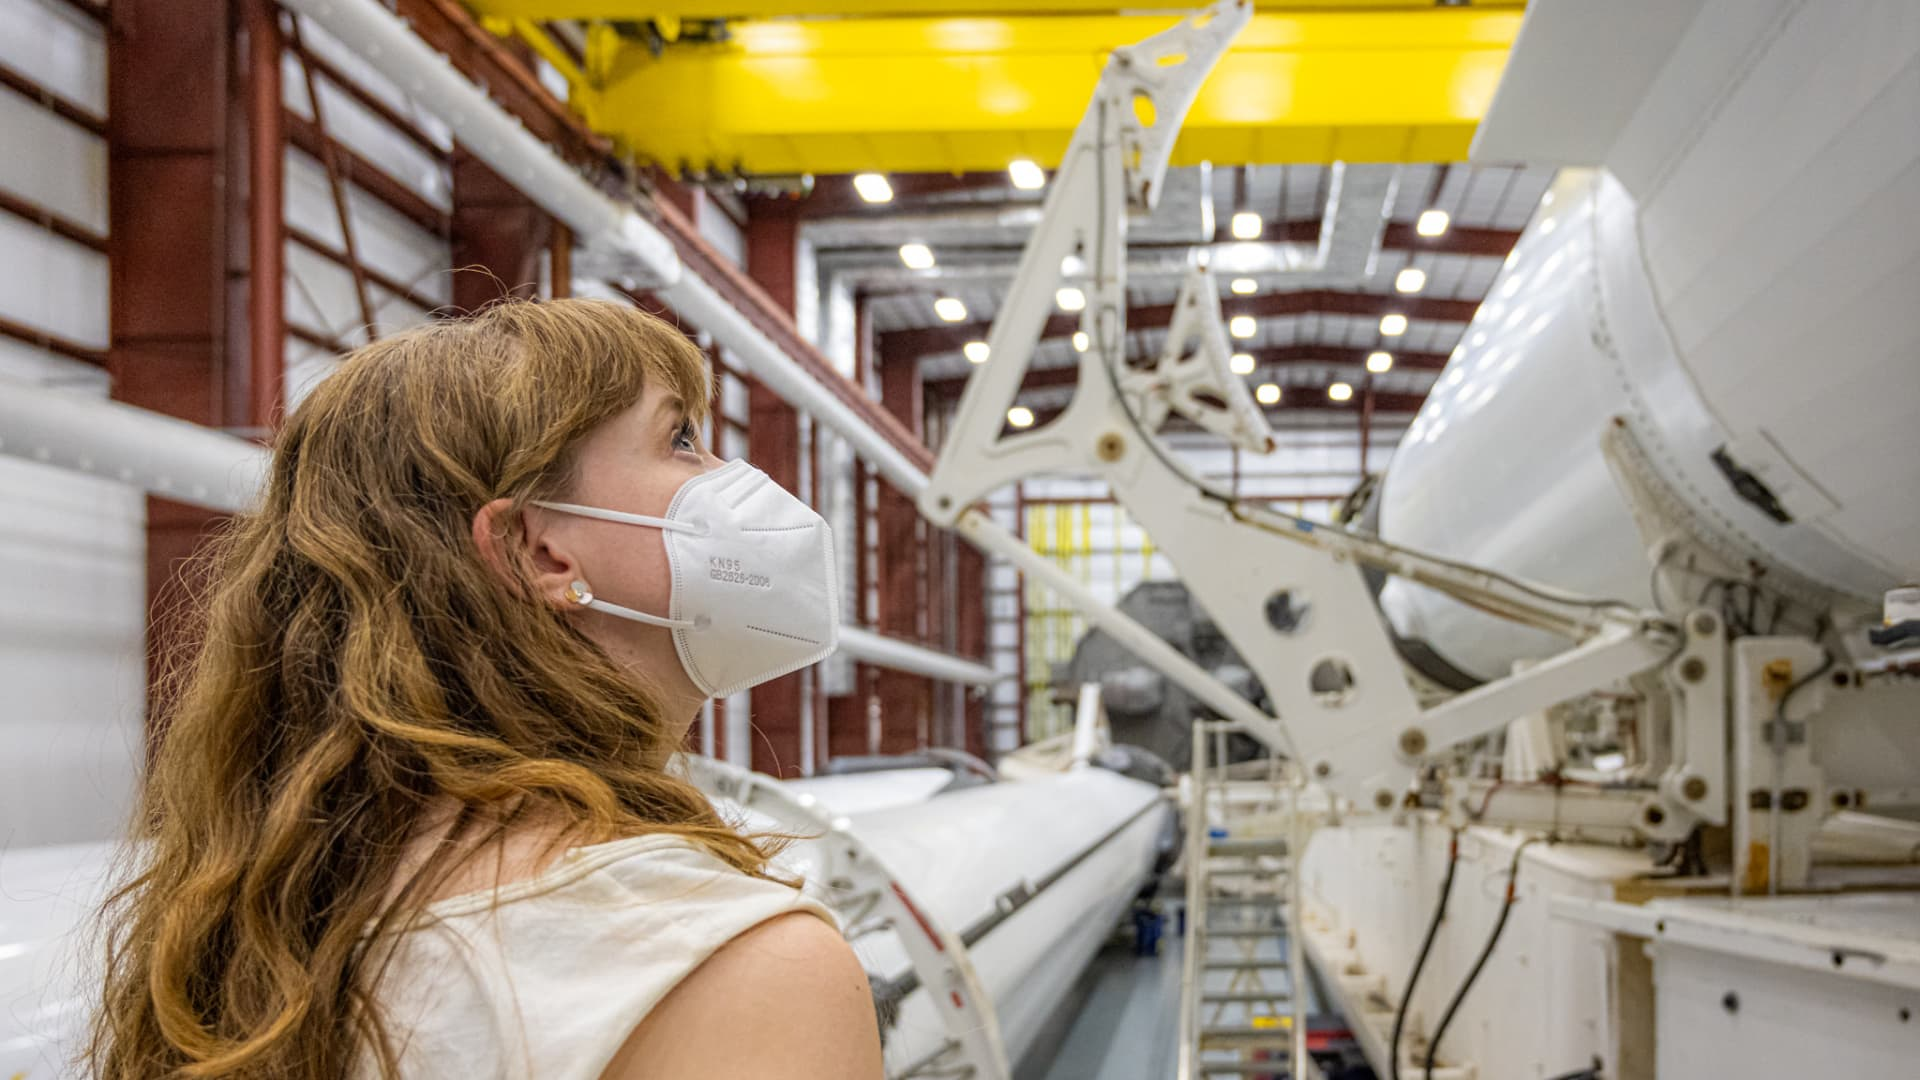 Hayley Arceneaux takes a look at the SpaceX Crew Dragon capsule and Falcon 9 rocket that will carry the crew to orbit.